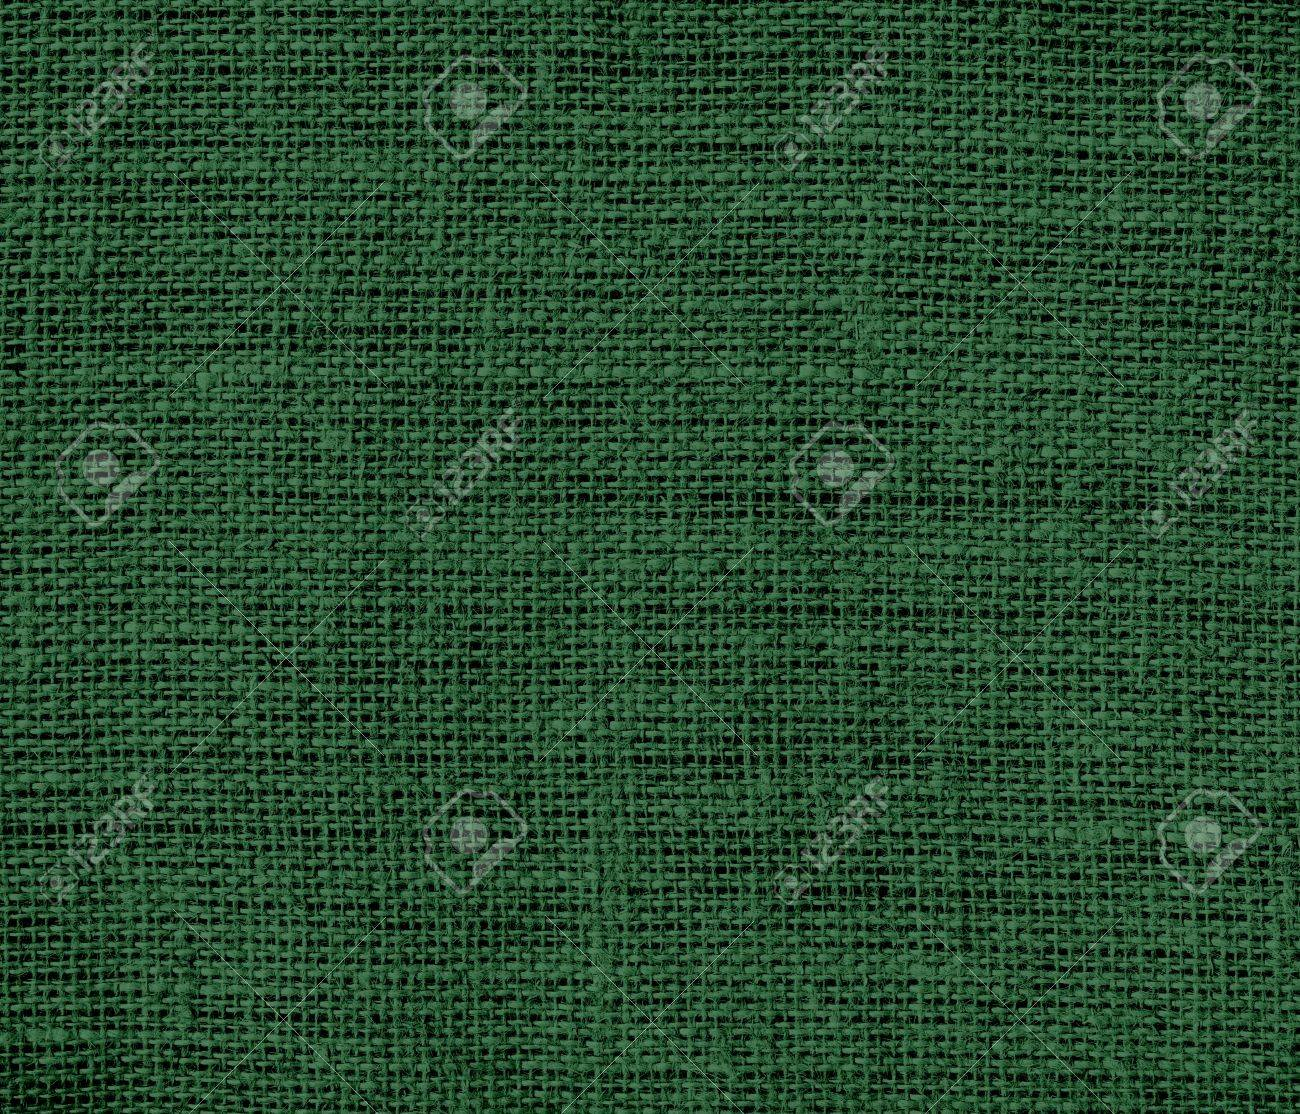 Cal Poly Green Burlap Texture Background Stock Photo Picture And 1300x1114